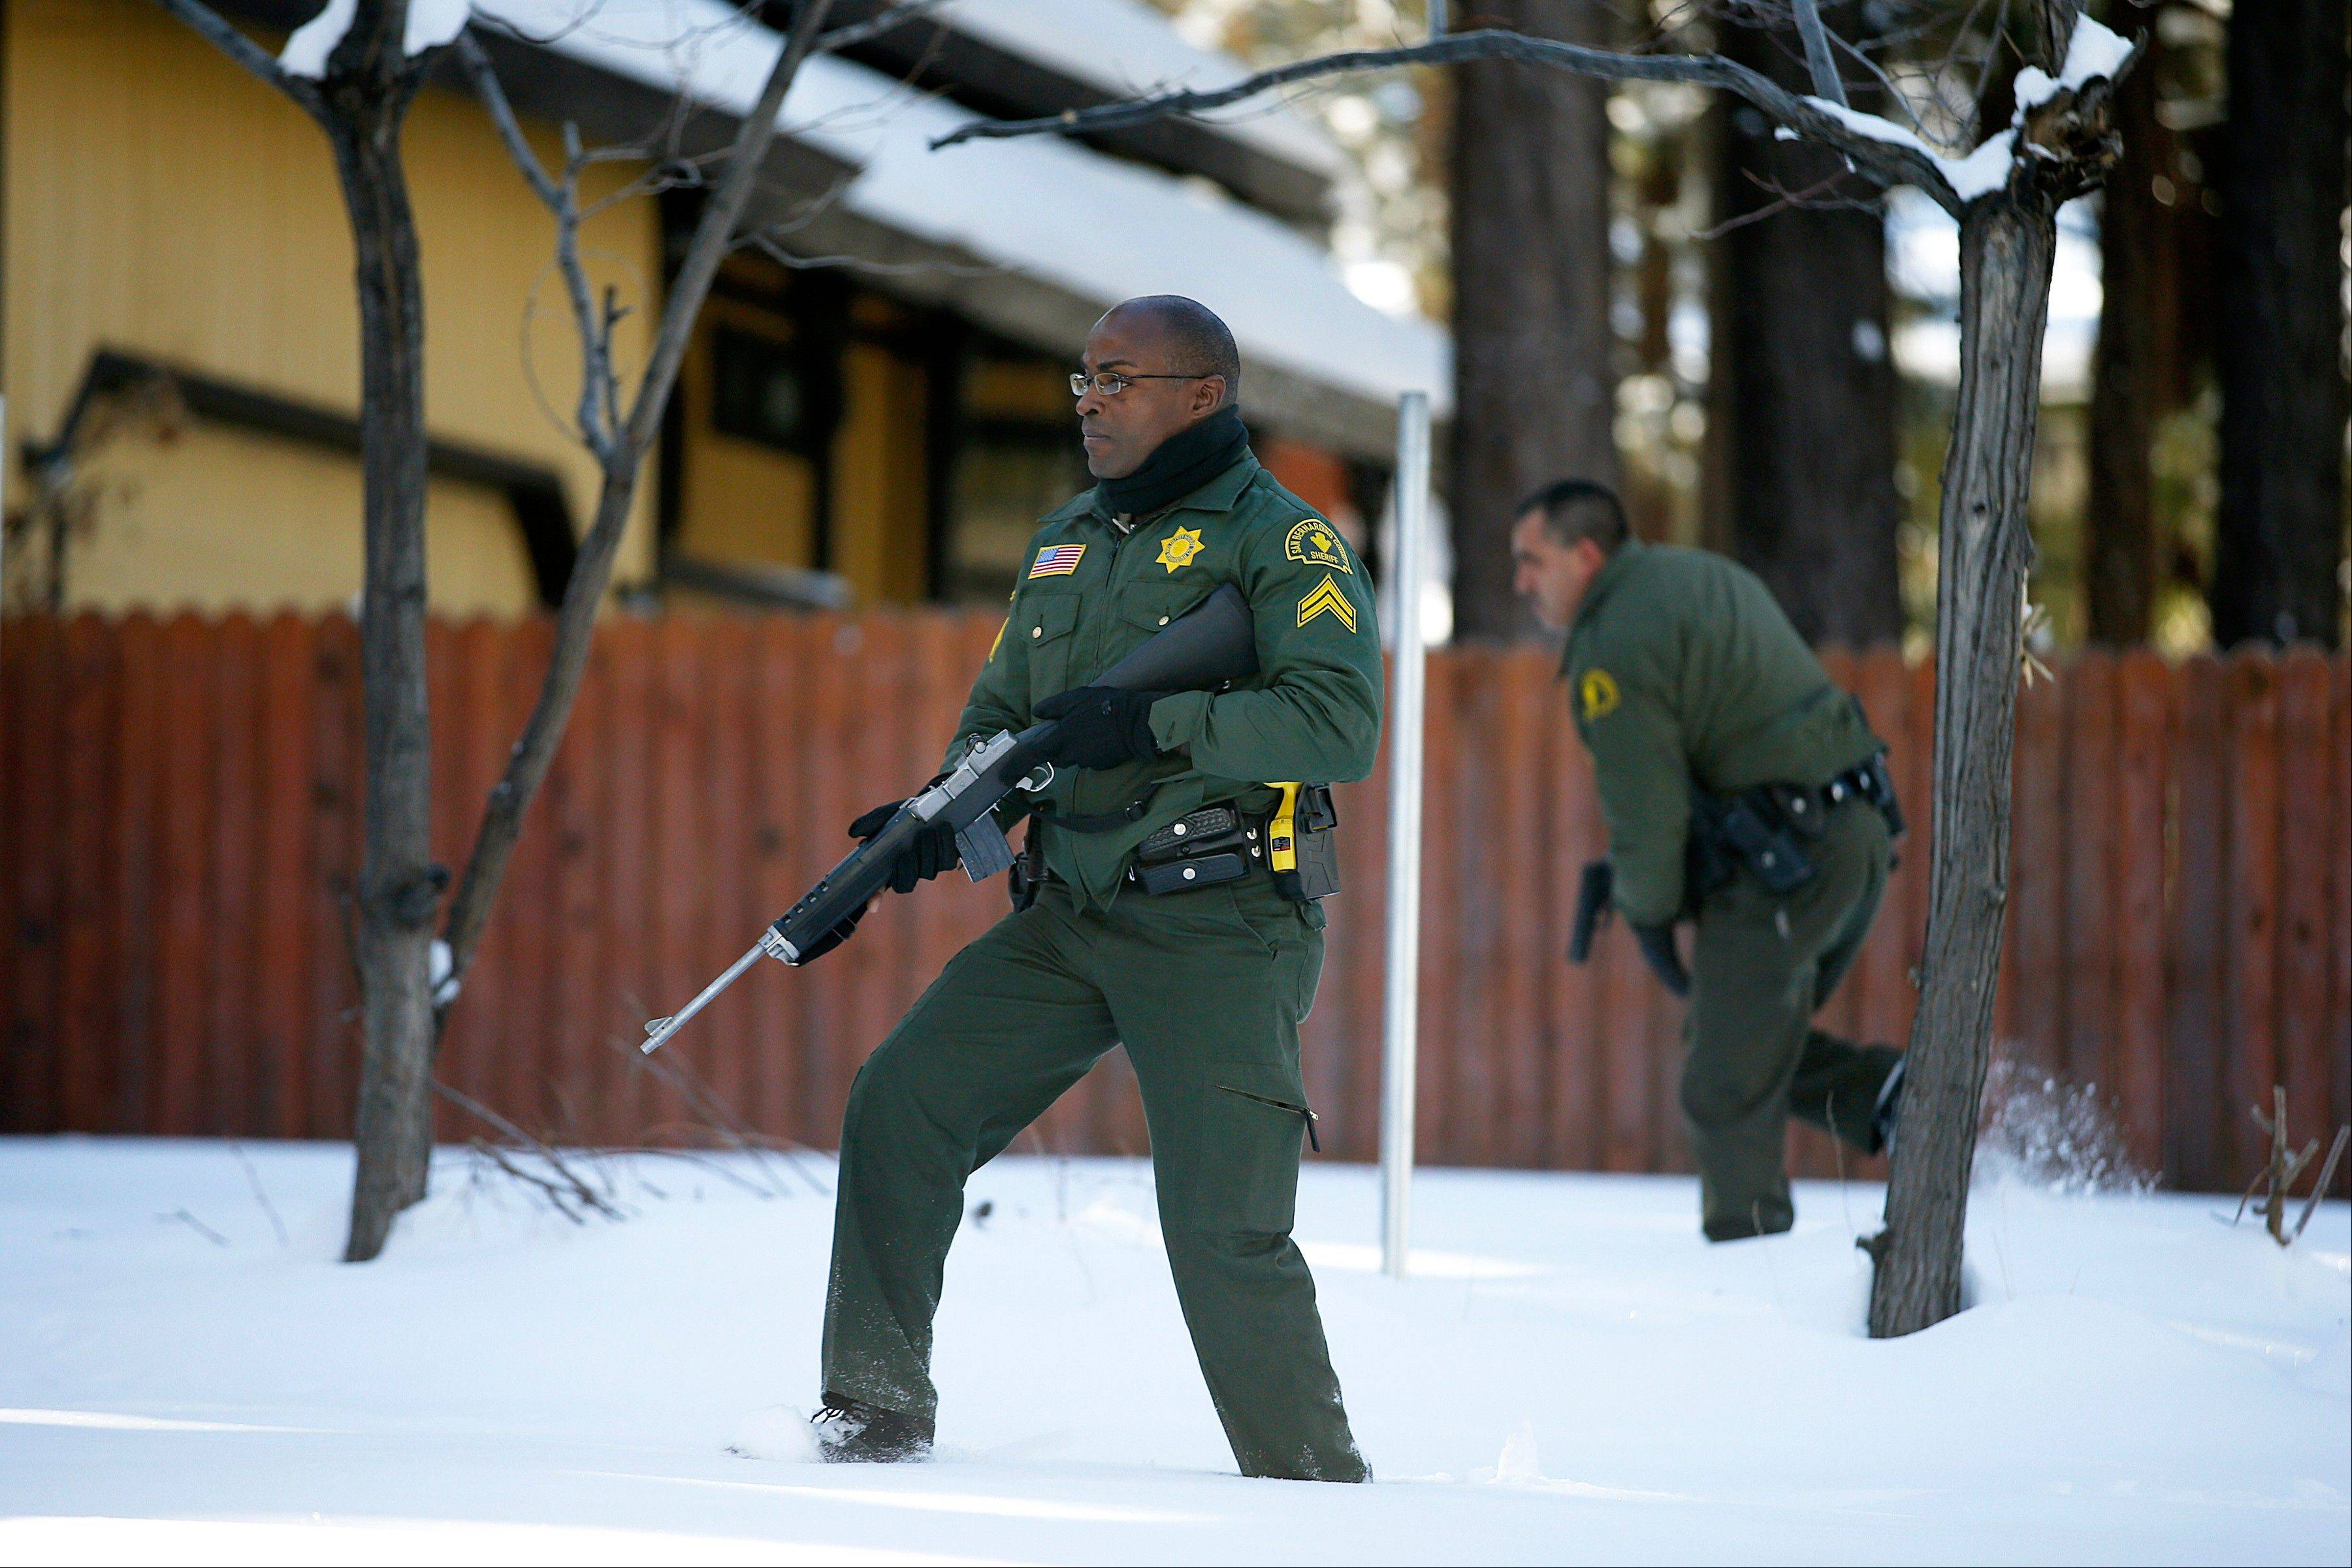 San Bernardino County sheriff�s officers Ken Owens, center, and Bernabe Ortiz search for former Los Angeles police officer Christopher Dorner on Sunday in Big Bear Lake, Calif.